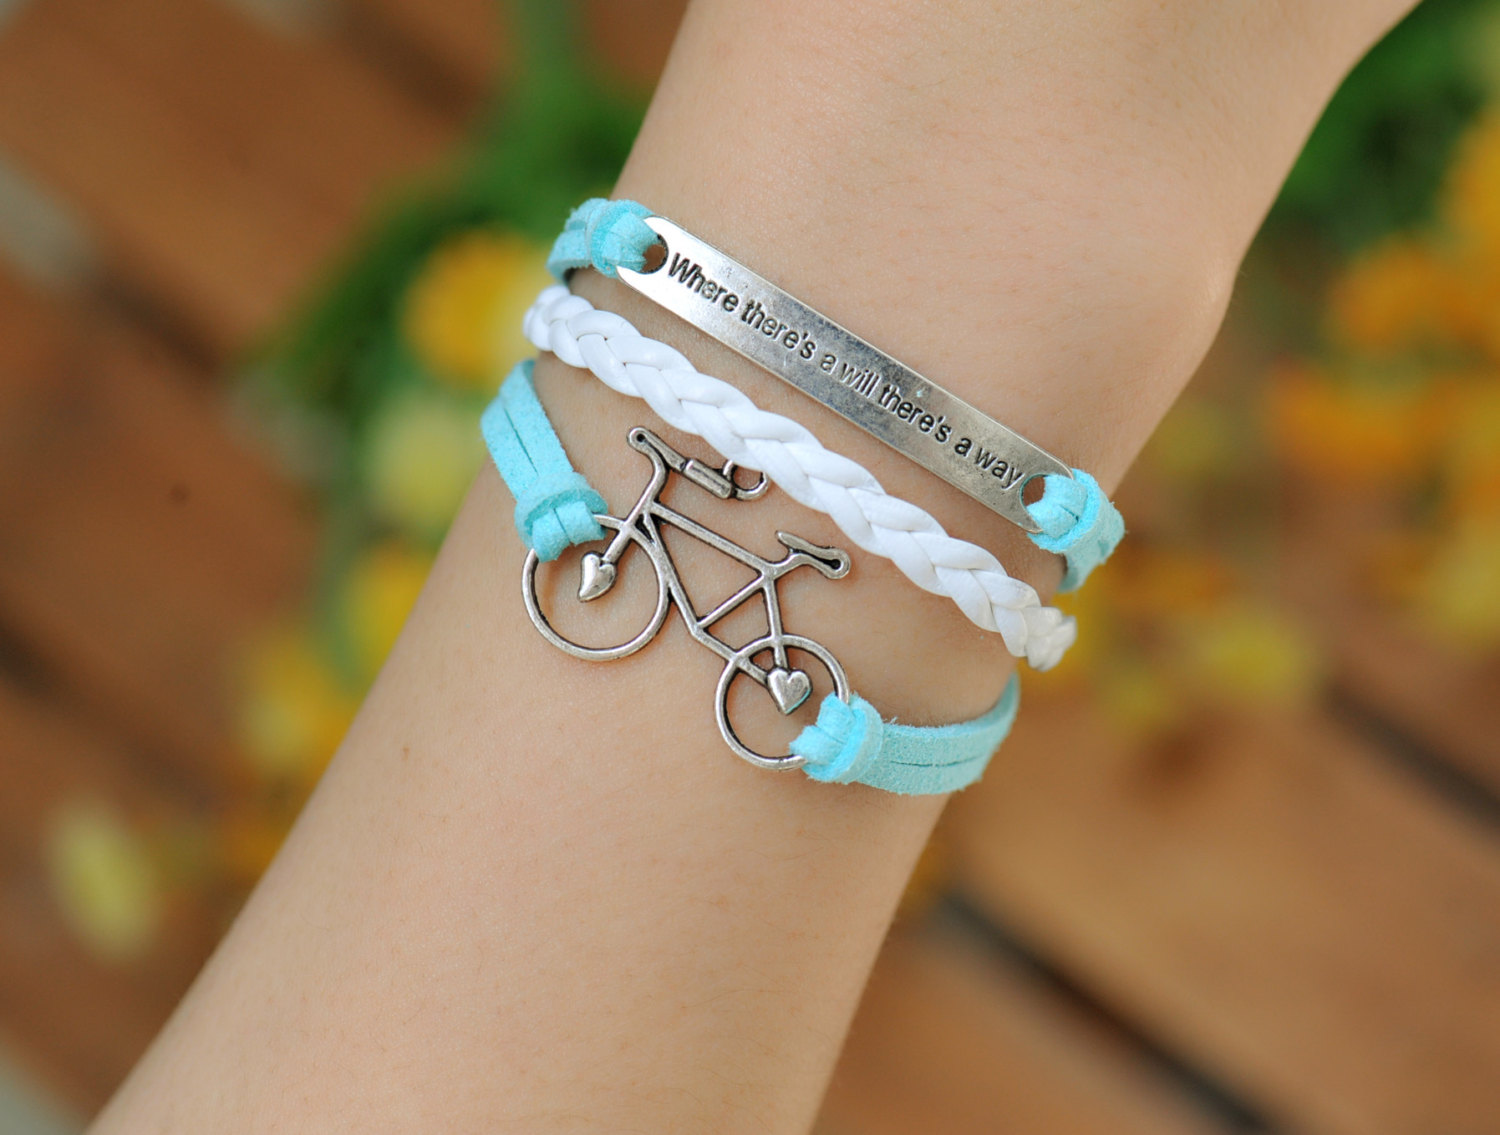 Bracelet Bike Retro Silver Love Alloy Blue Leather Braid Engraved Where There Is A Will Way